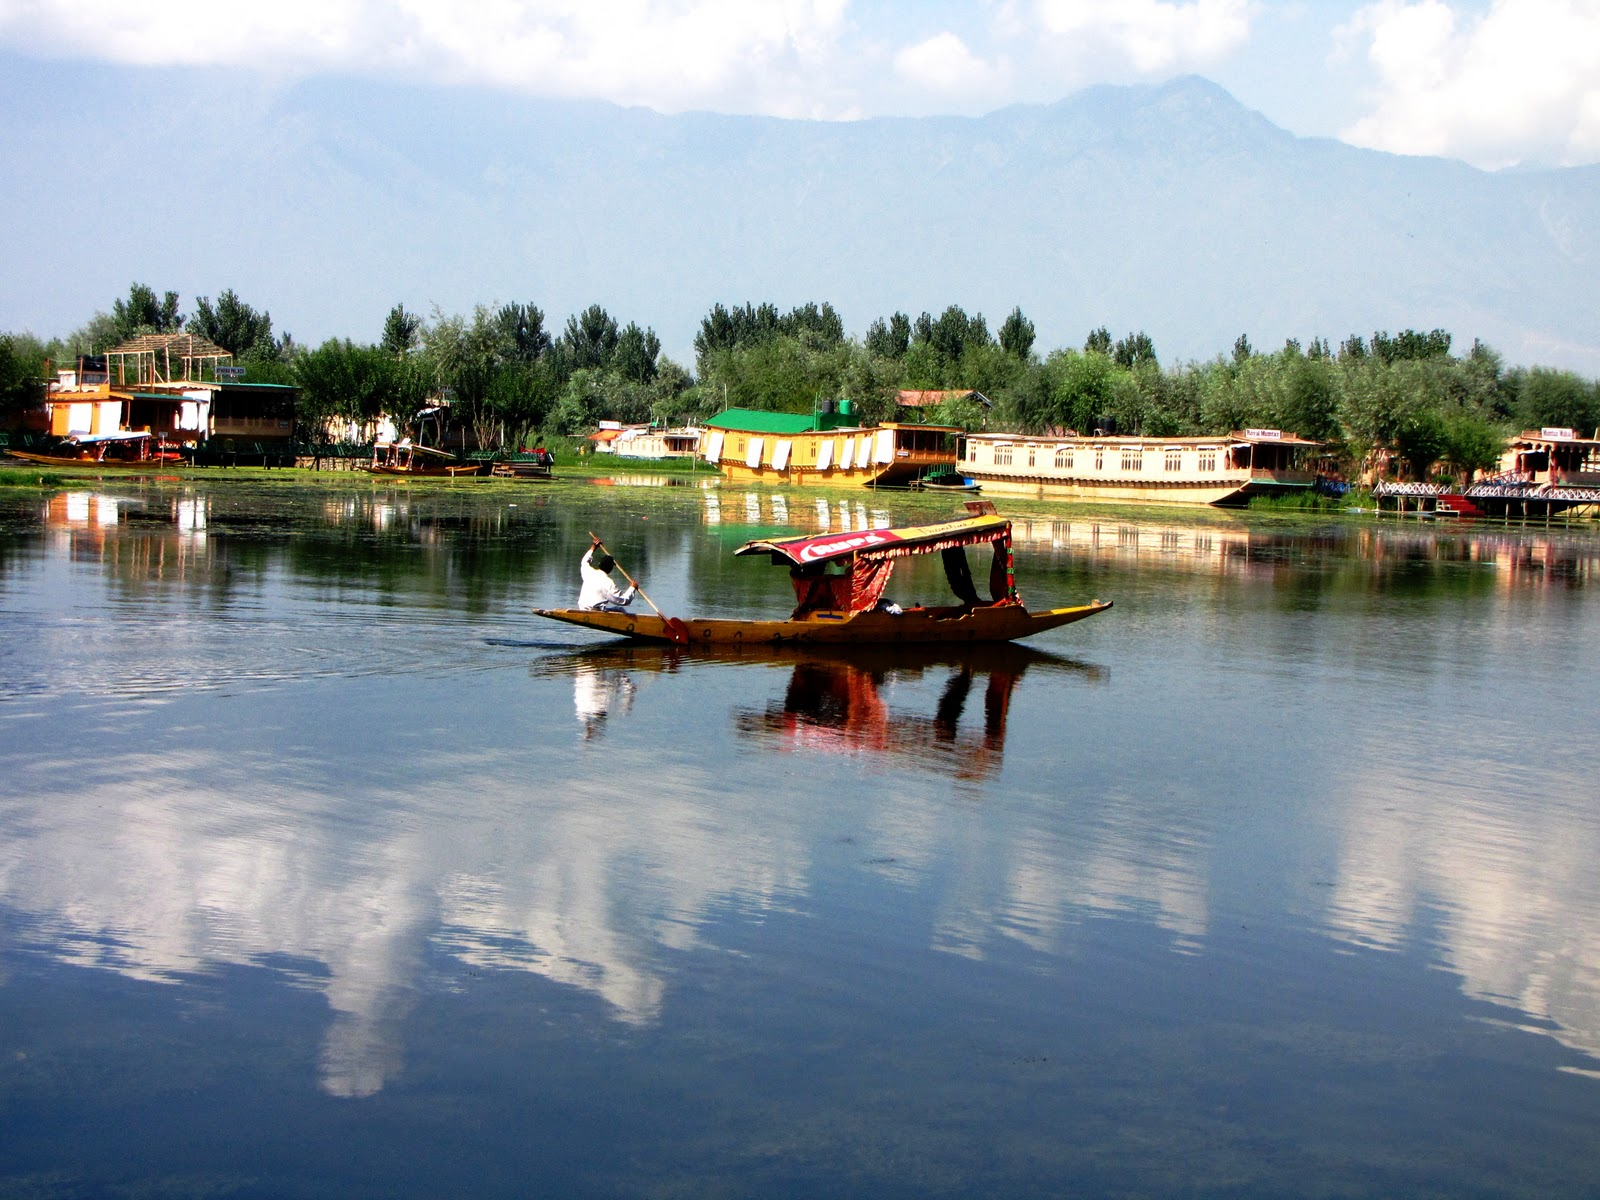 """kashmir the paradise on earth It was the persian poet amir khusru who referred to kashmir as a paradise on earth there is a old stone plaque in i think, shalimar gardens, which proclaims agar firdous baroye zameen ast, hami asto, hami asto hami ast"""", meaning &quotif there is a p."""